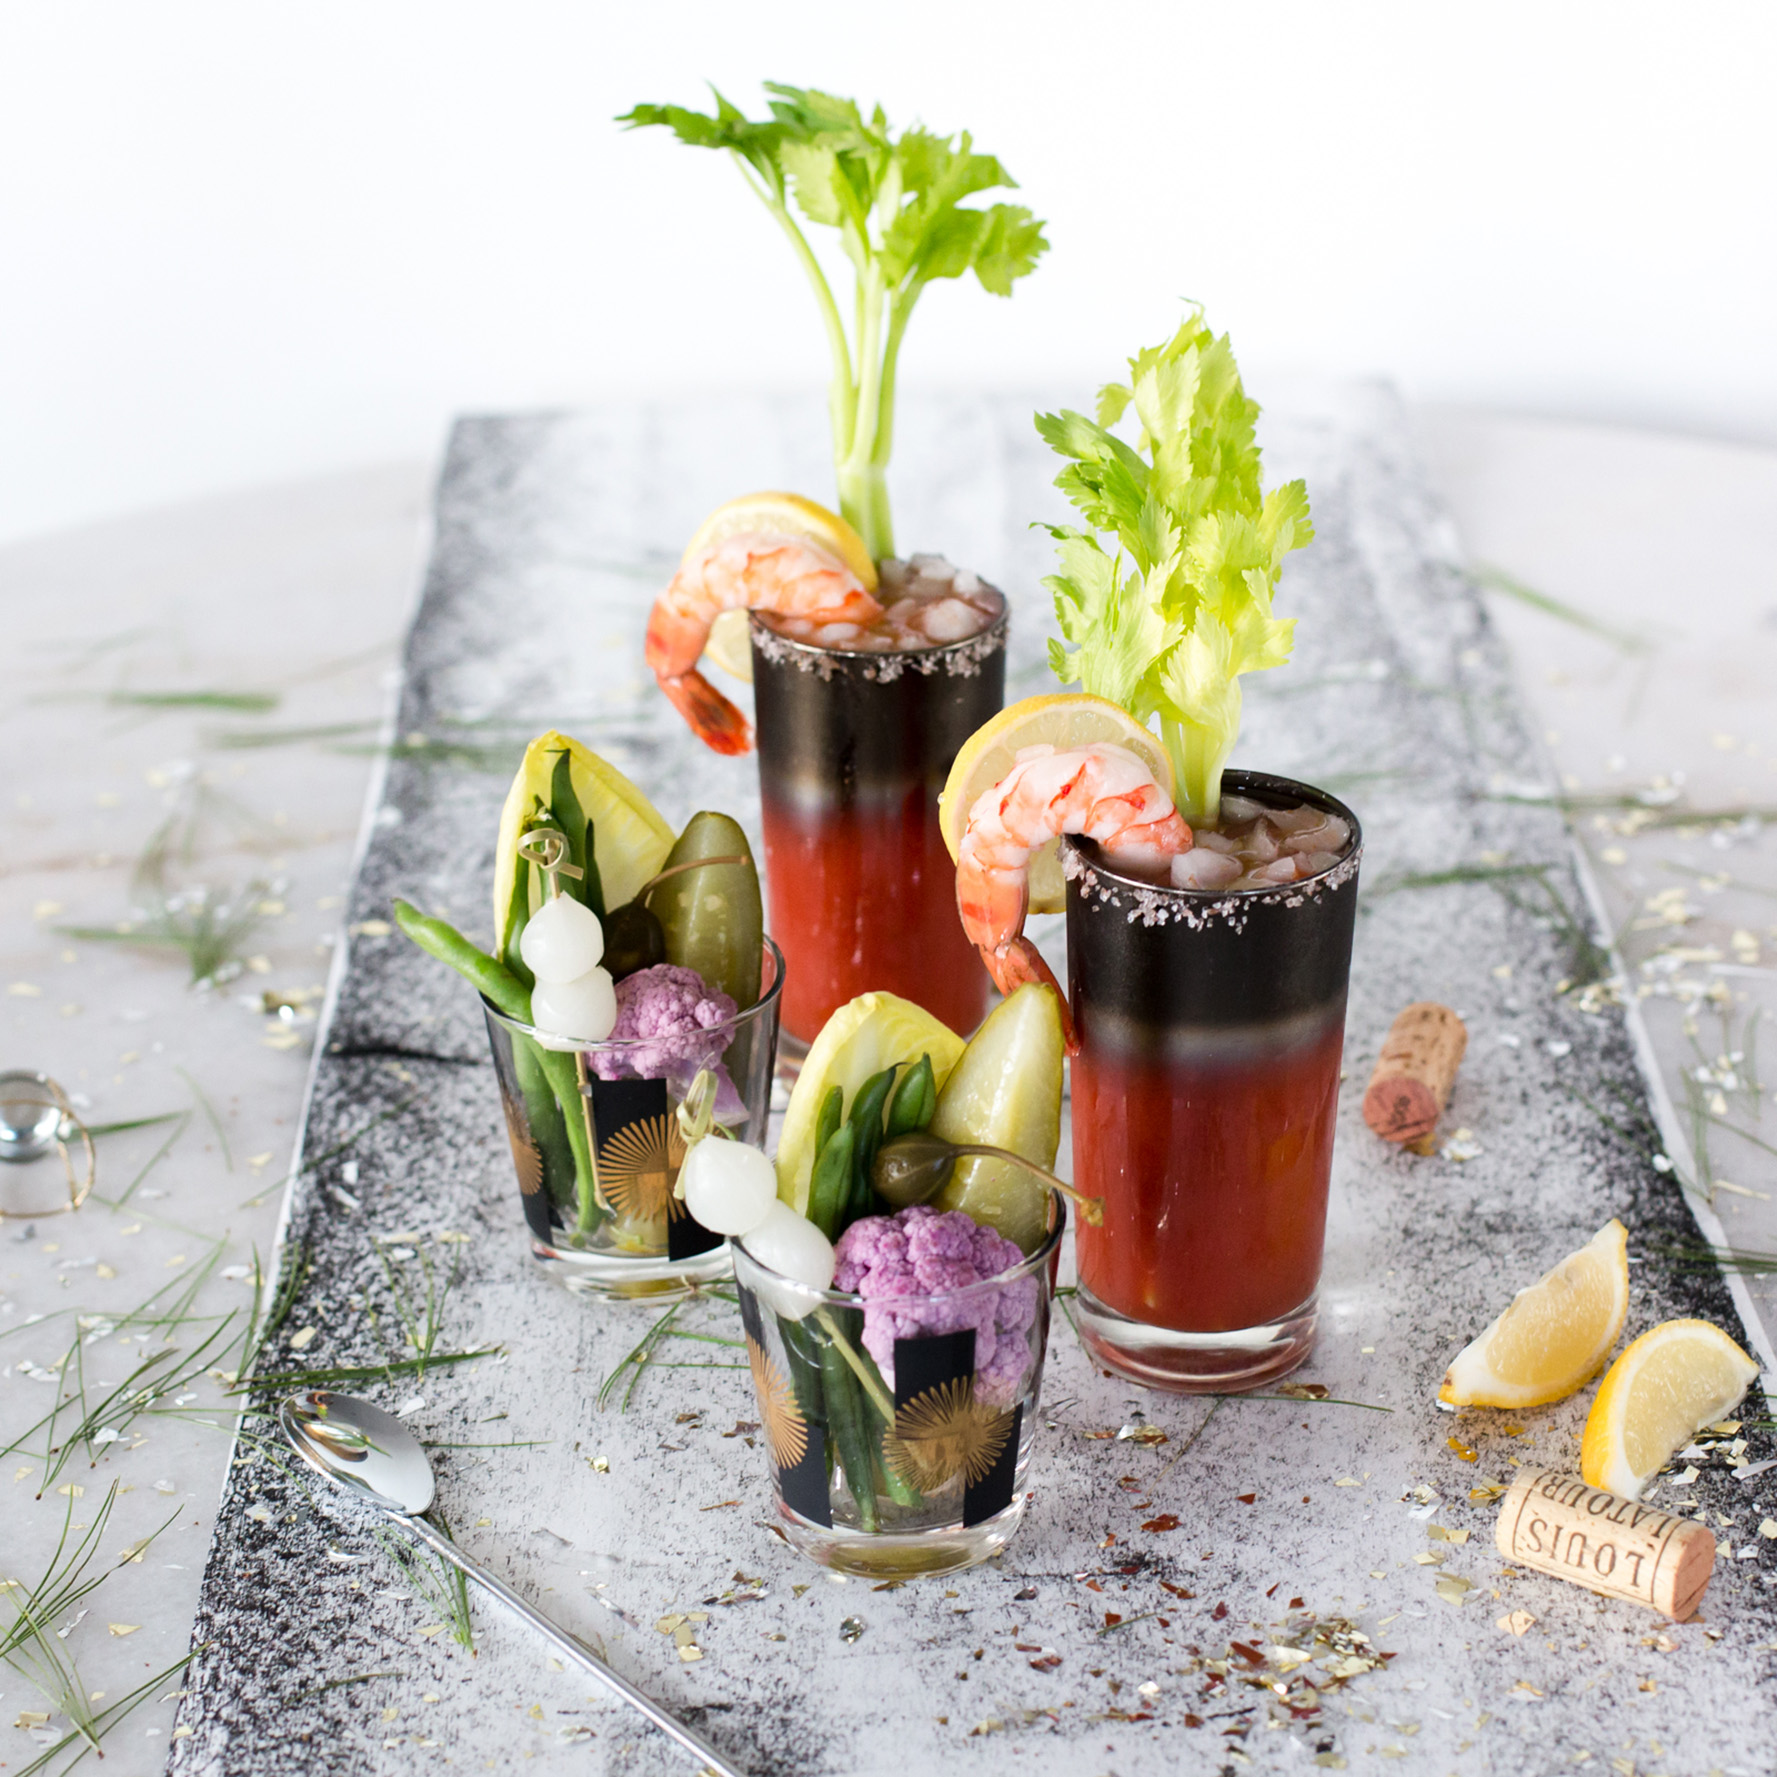 cocktail_bloodymary_garnish_1216.jpg